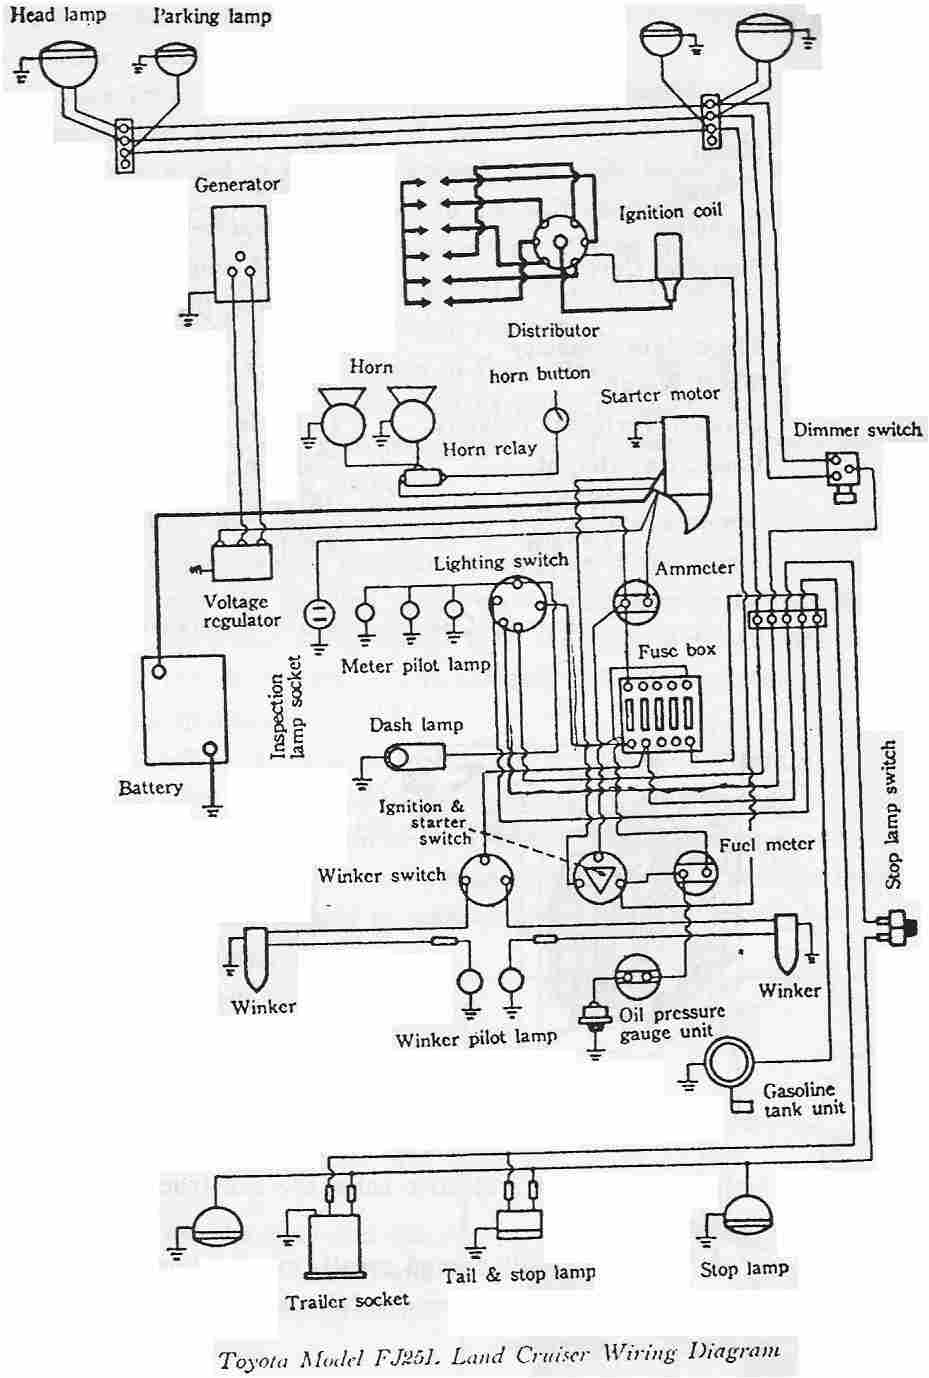 toyota land cruiser fuse box diagram toyota image toyota wiring diagram toyota wiring diagrams on toyota land cruiser fuse box diagram